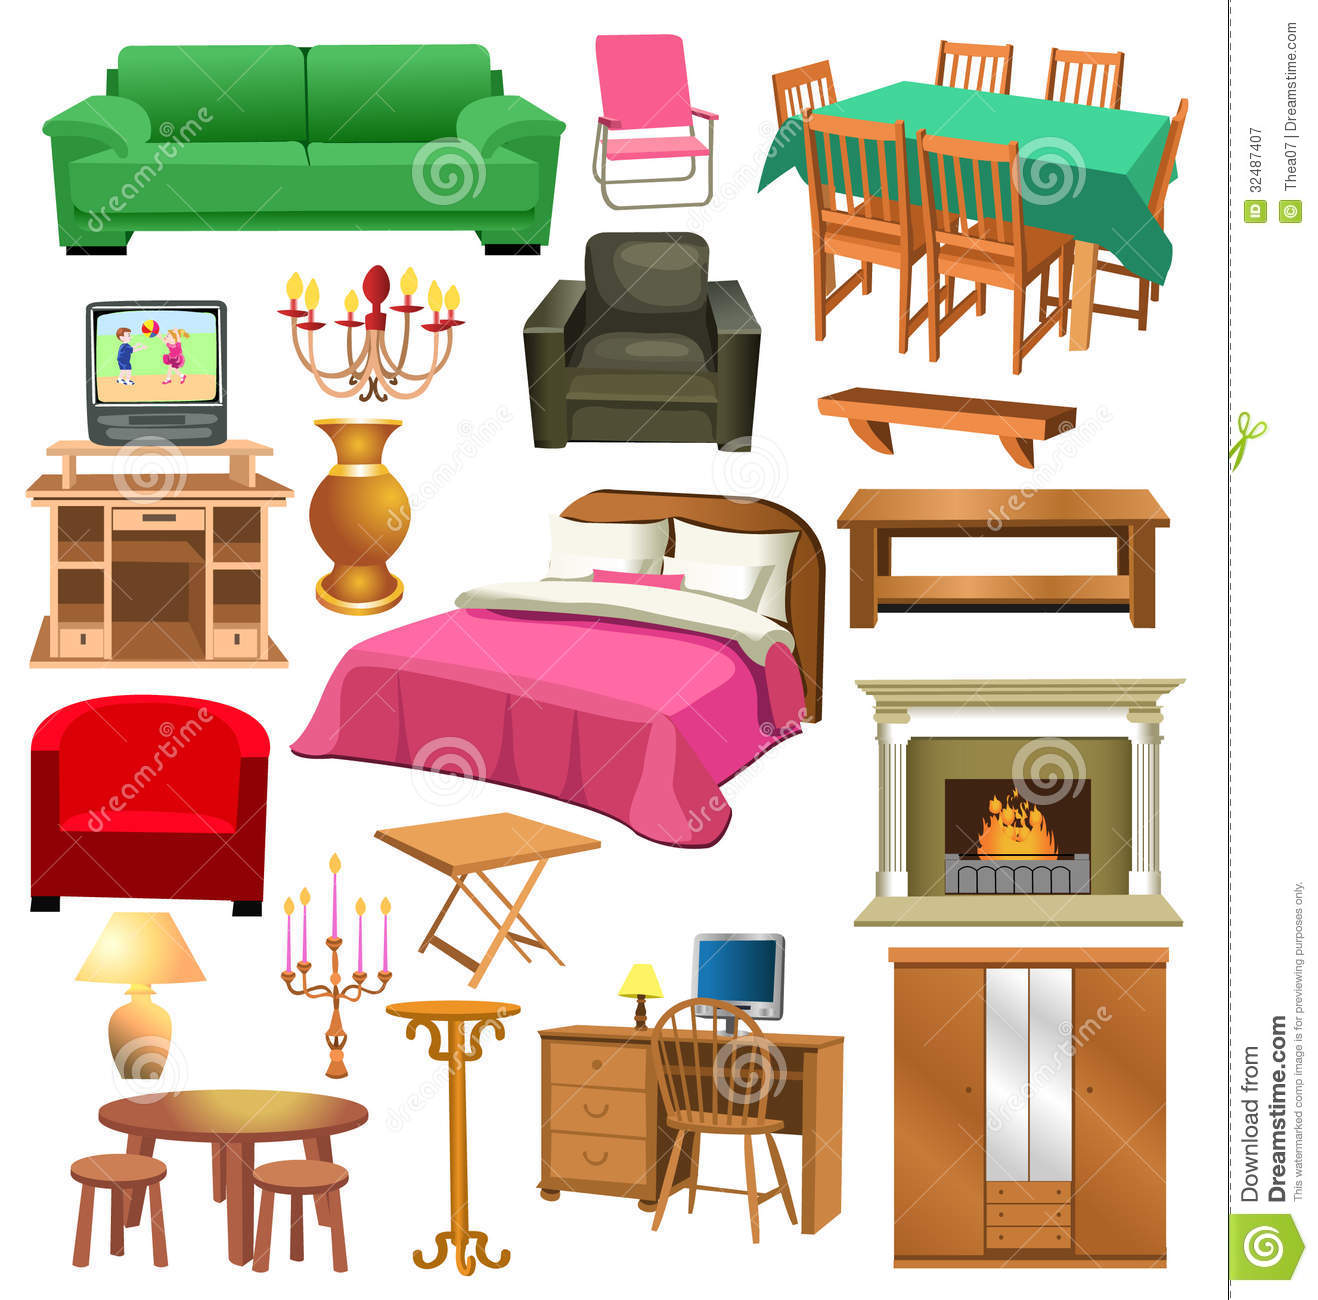 Living room furniture stock image image of furniture for Furniture found in the home